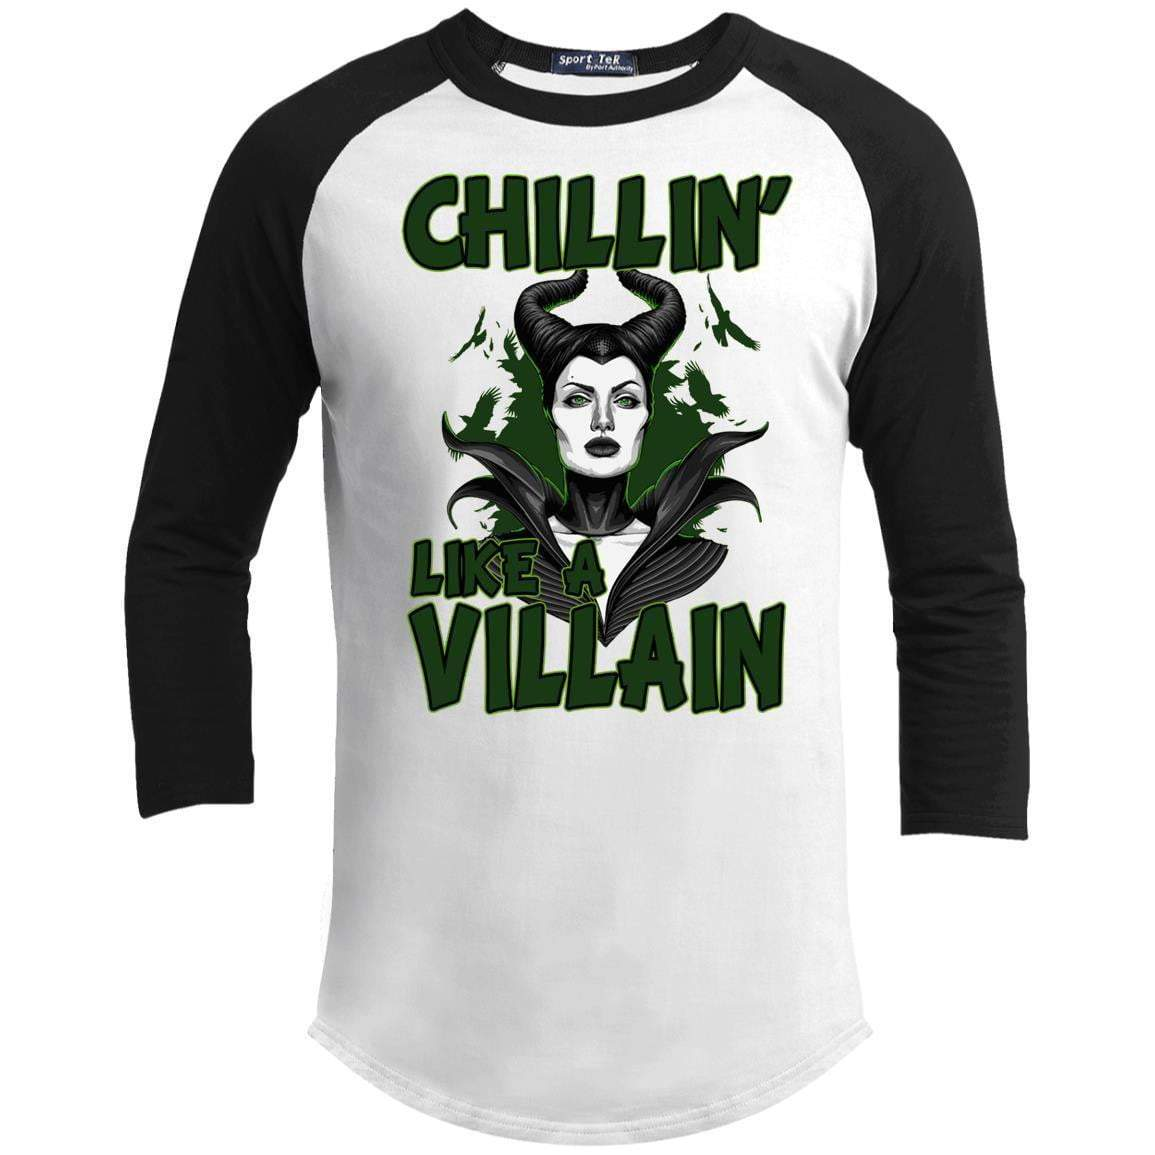 CHILLIN LIKE A VILLAIN - MALIFICENT Unisex 3/4 Sleeve Raglan